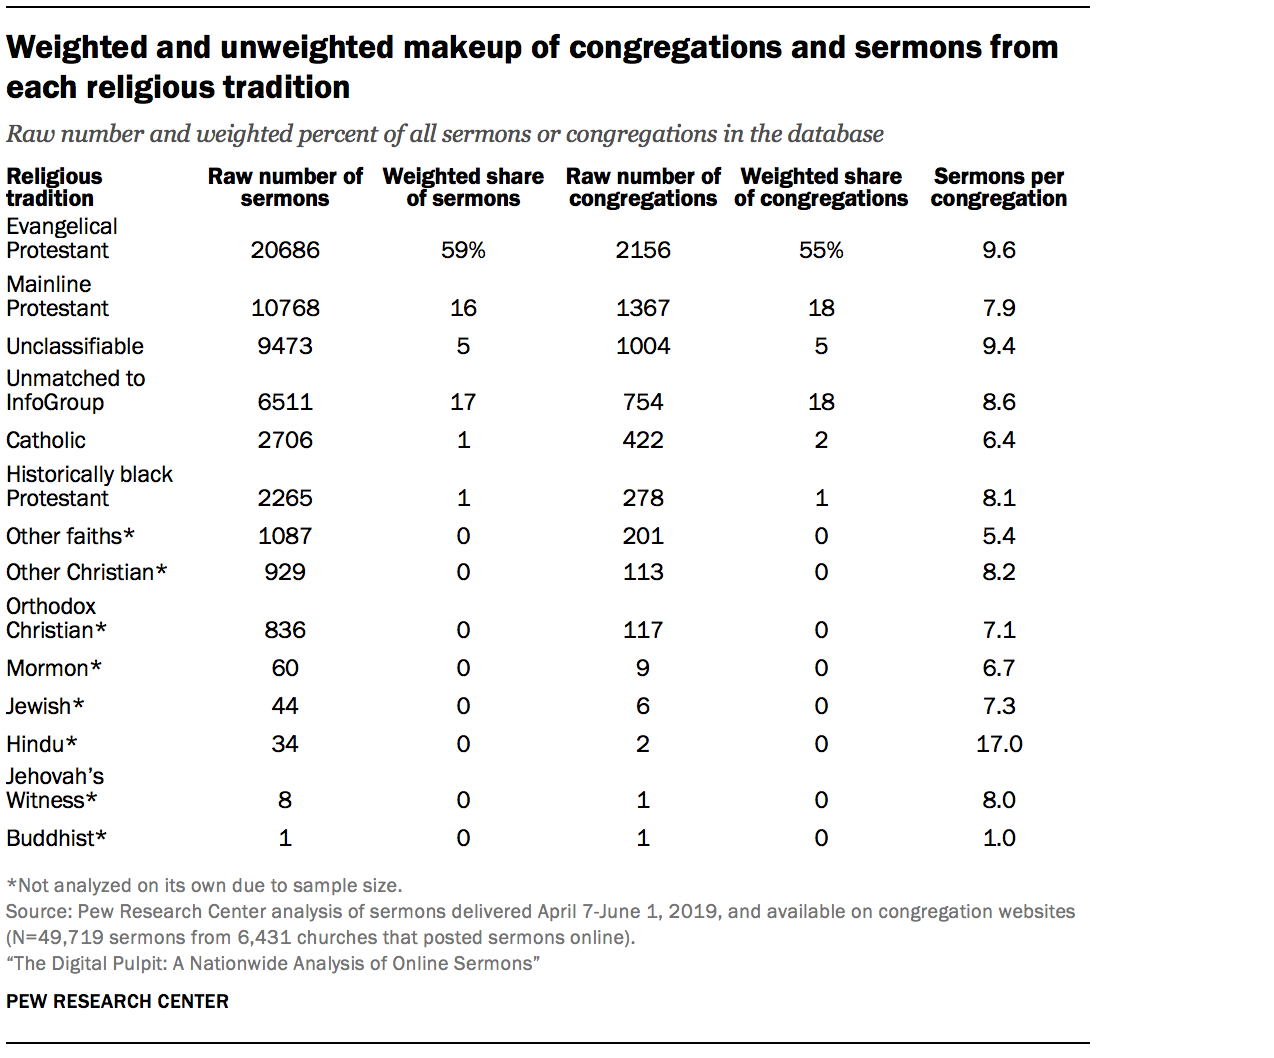 Weighted and unweighted makeup of congregations and sermons from each religious tradition